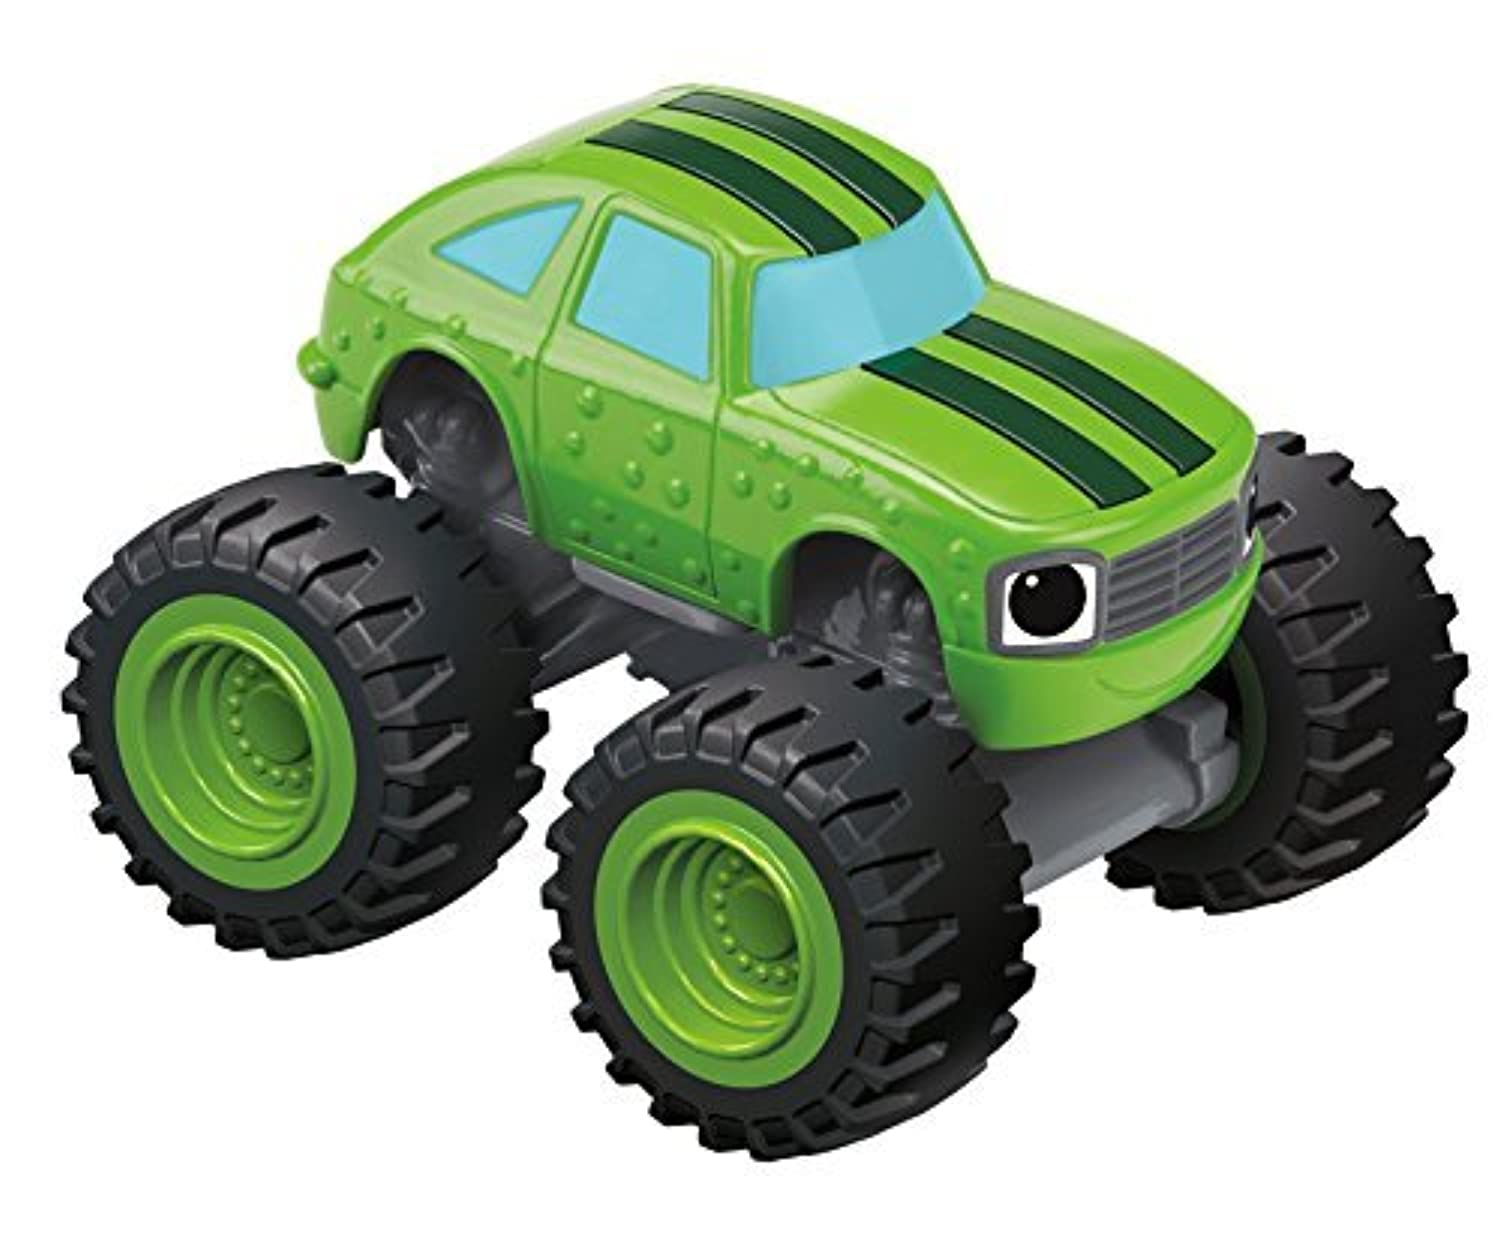 Nickelodeon Blaze and the Monster Machines Pickle Core Vehicle [並行輸入品]